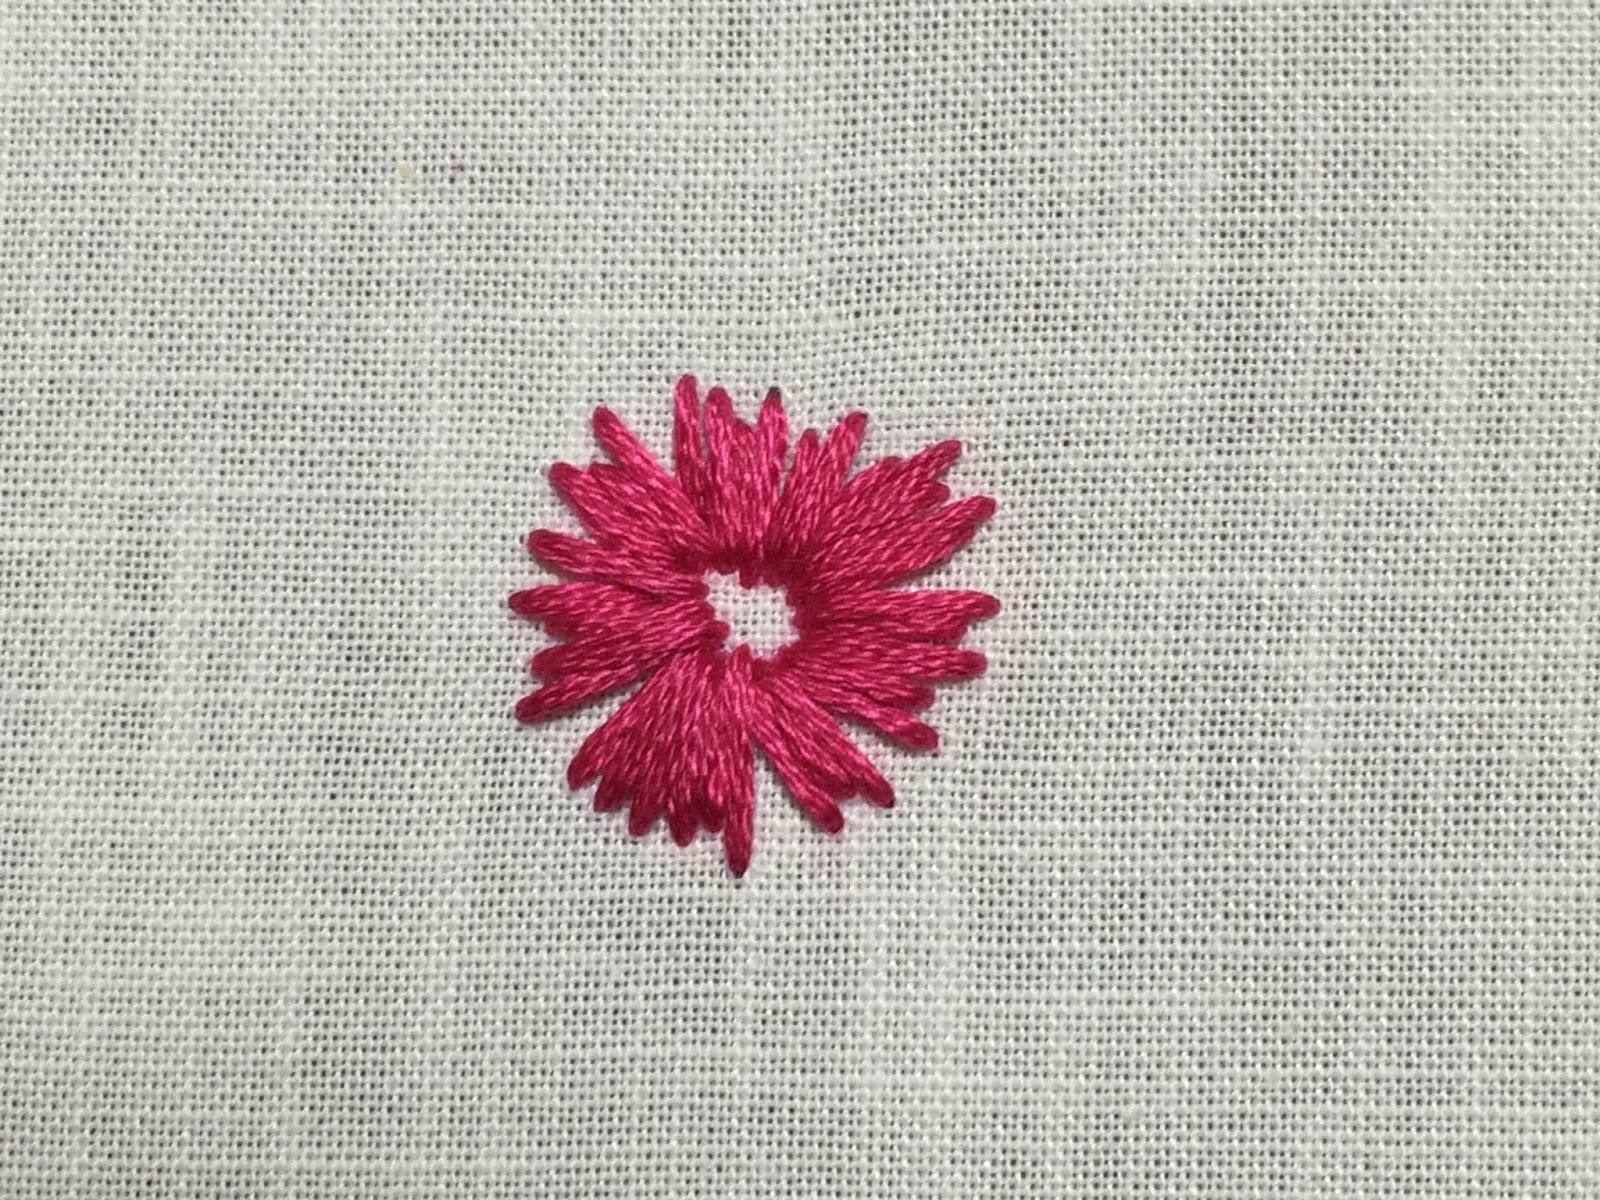 straight stitch embroidered flowers